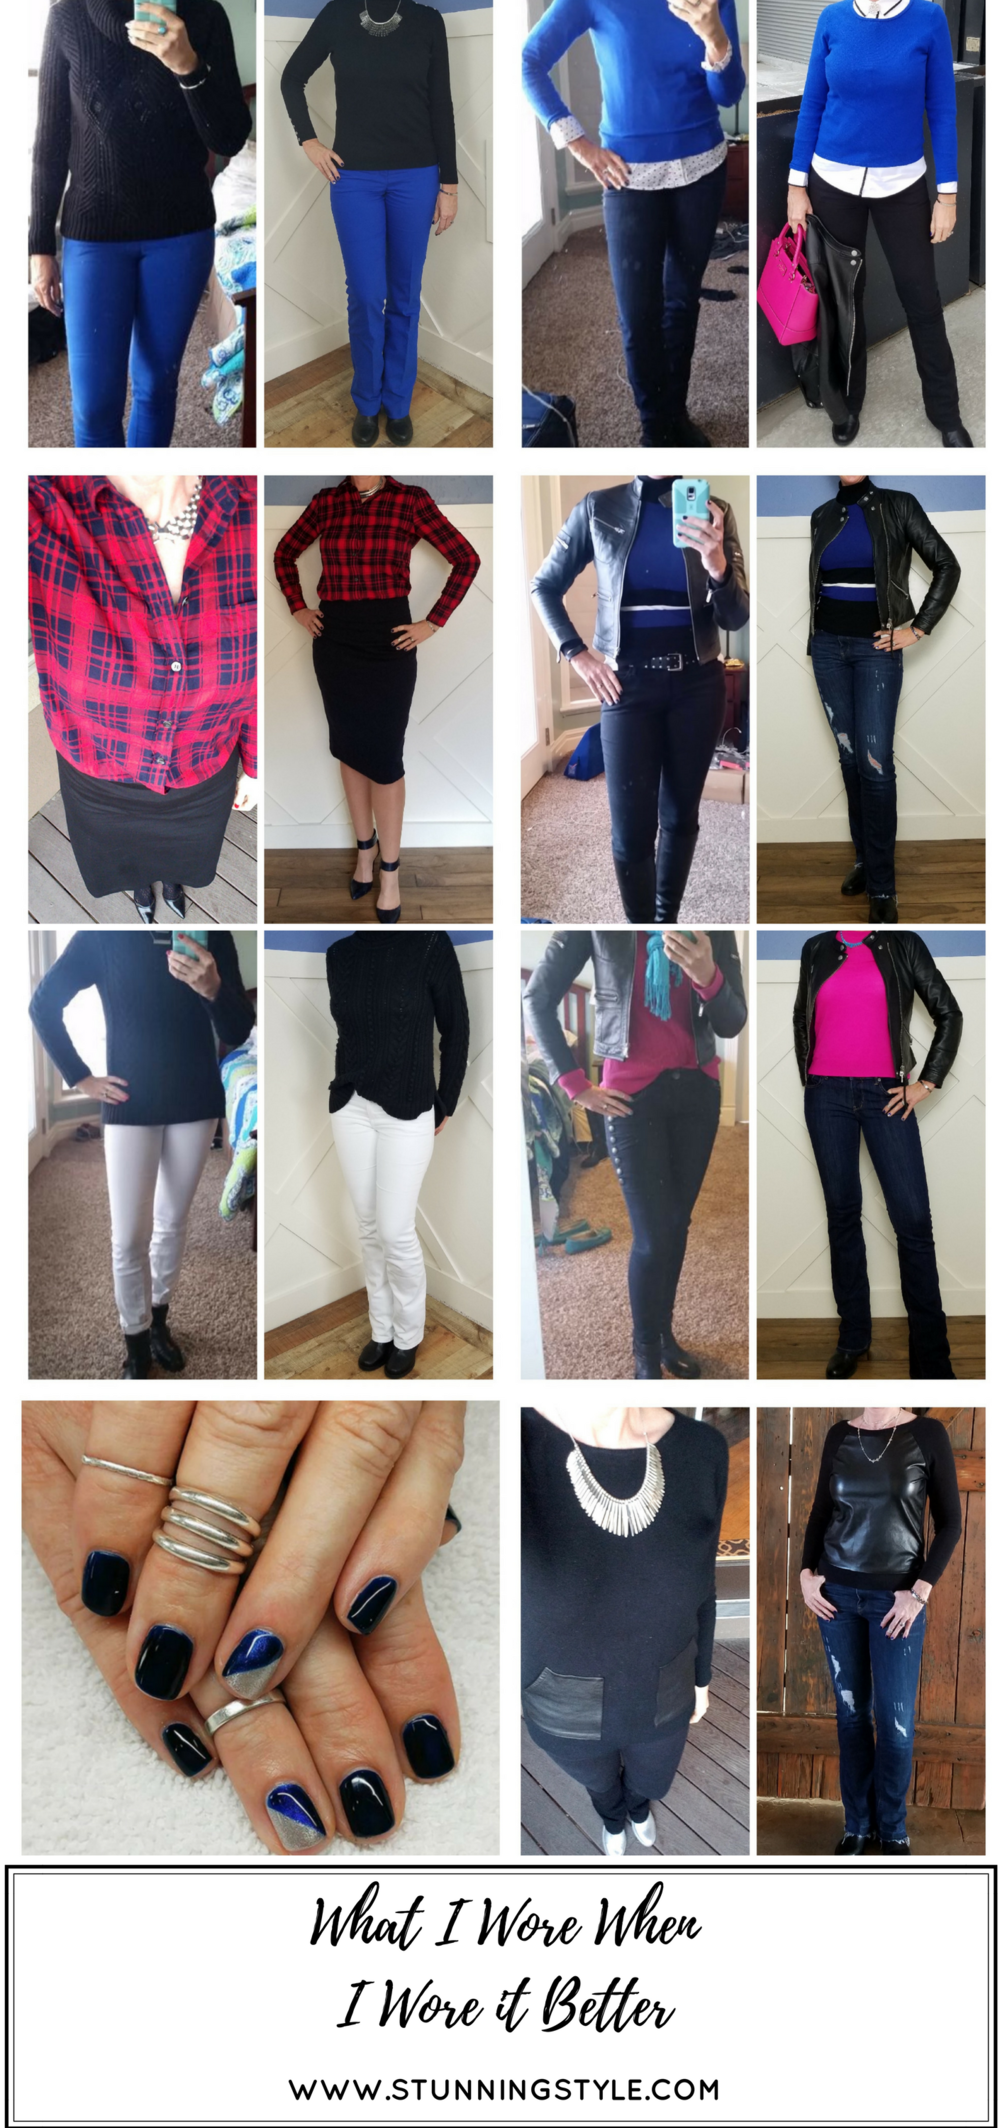 Stunning Style. Sometimes you think you nailed an outfit, until you see a picture later. I rounded up 7 winter outfits I wore and improved them. Comes see what I wore when I wore it better. Bold everyday style from a busy stay-at-home mom of 6 kids, spring style. Bold colors, bold lips, classic and edgy style outfits. Dressing Your Truth Type 4 DYT T4 T4/3. Winter outfits.